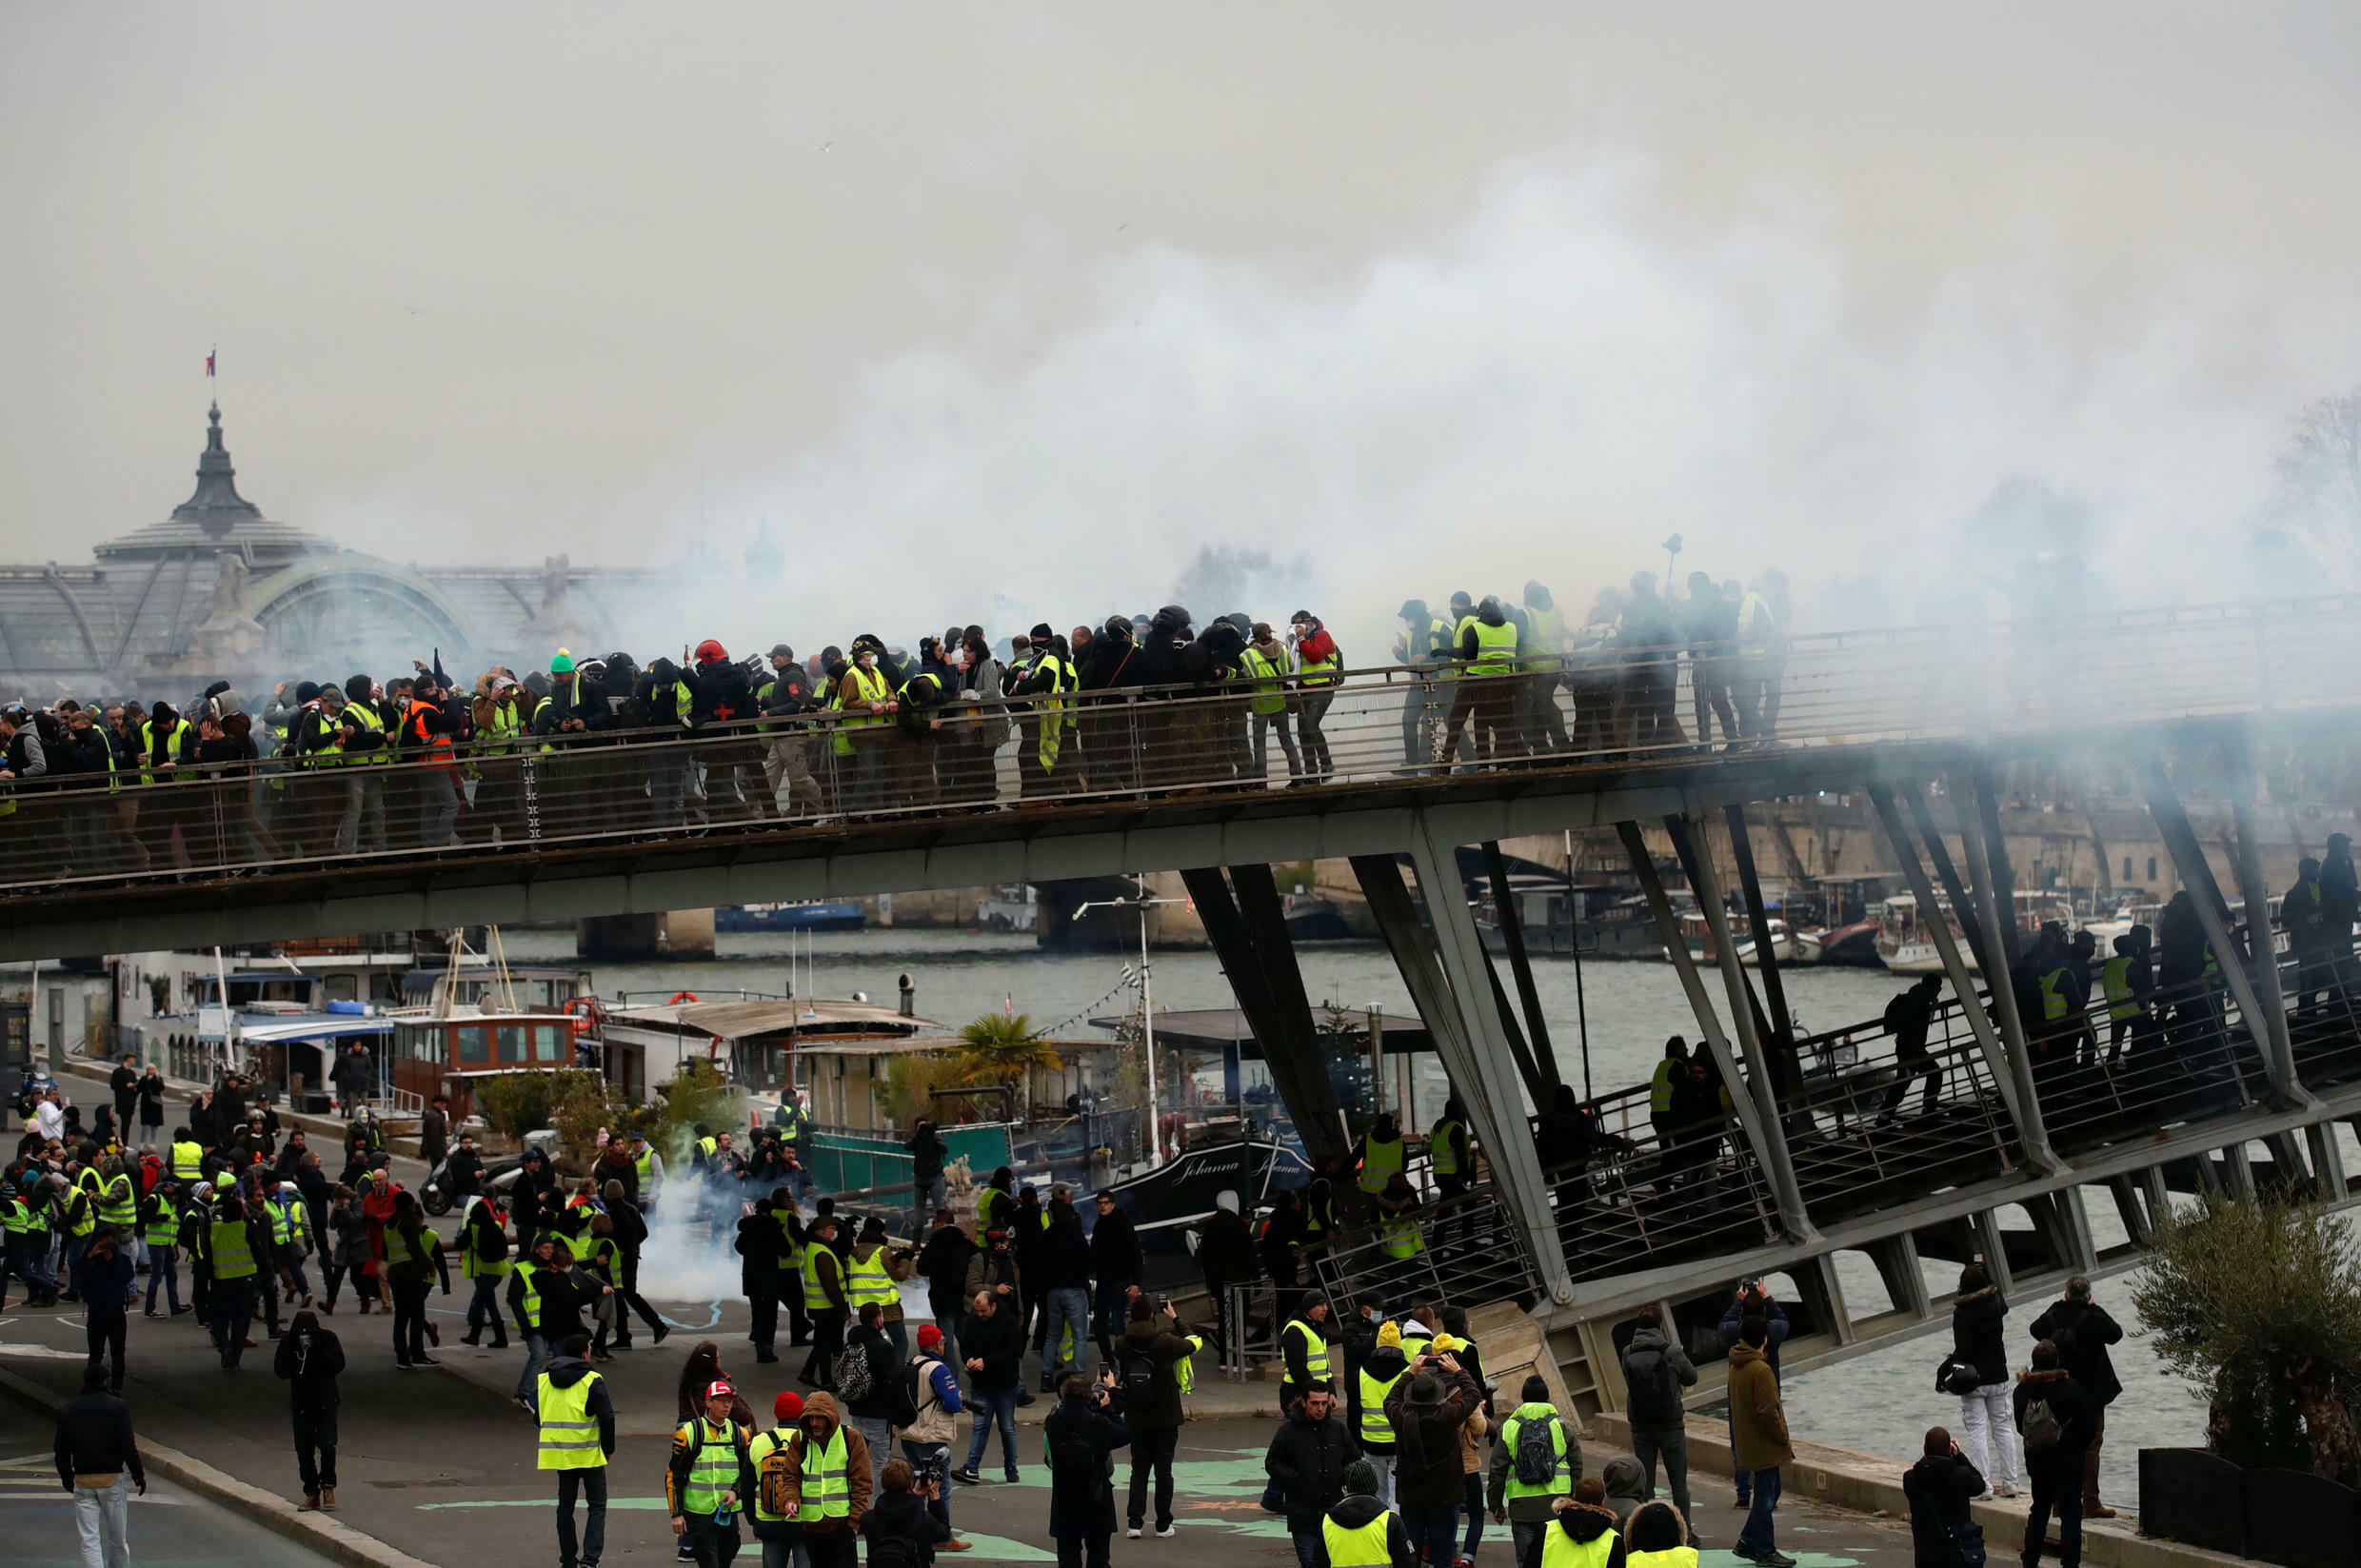 Scenes such as these have become a weekly Saturday event for Parisians since November last year (Photo - January 5, 2019).